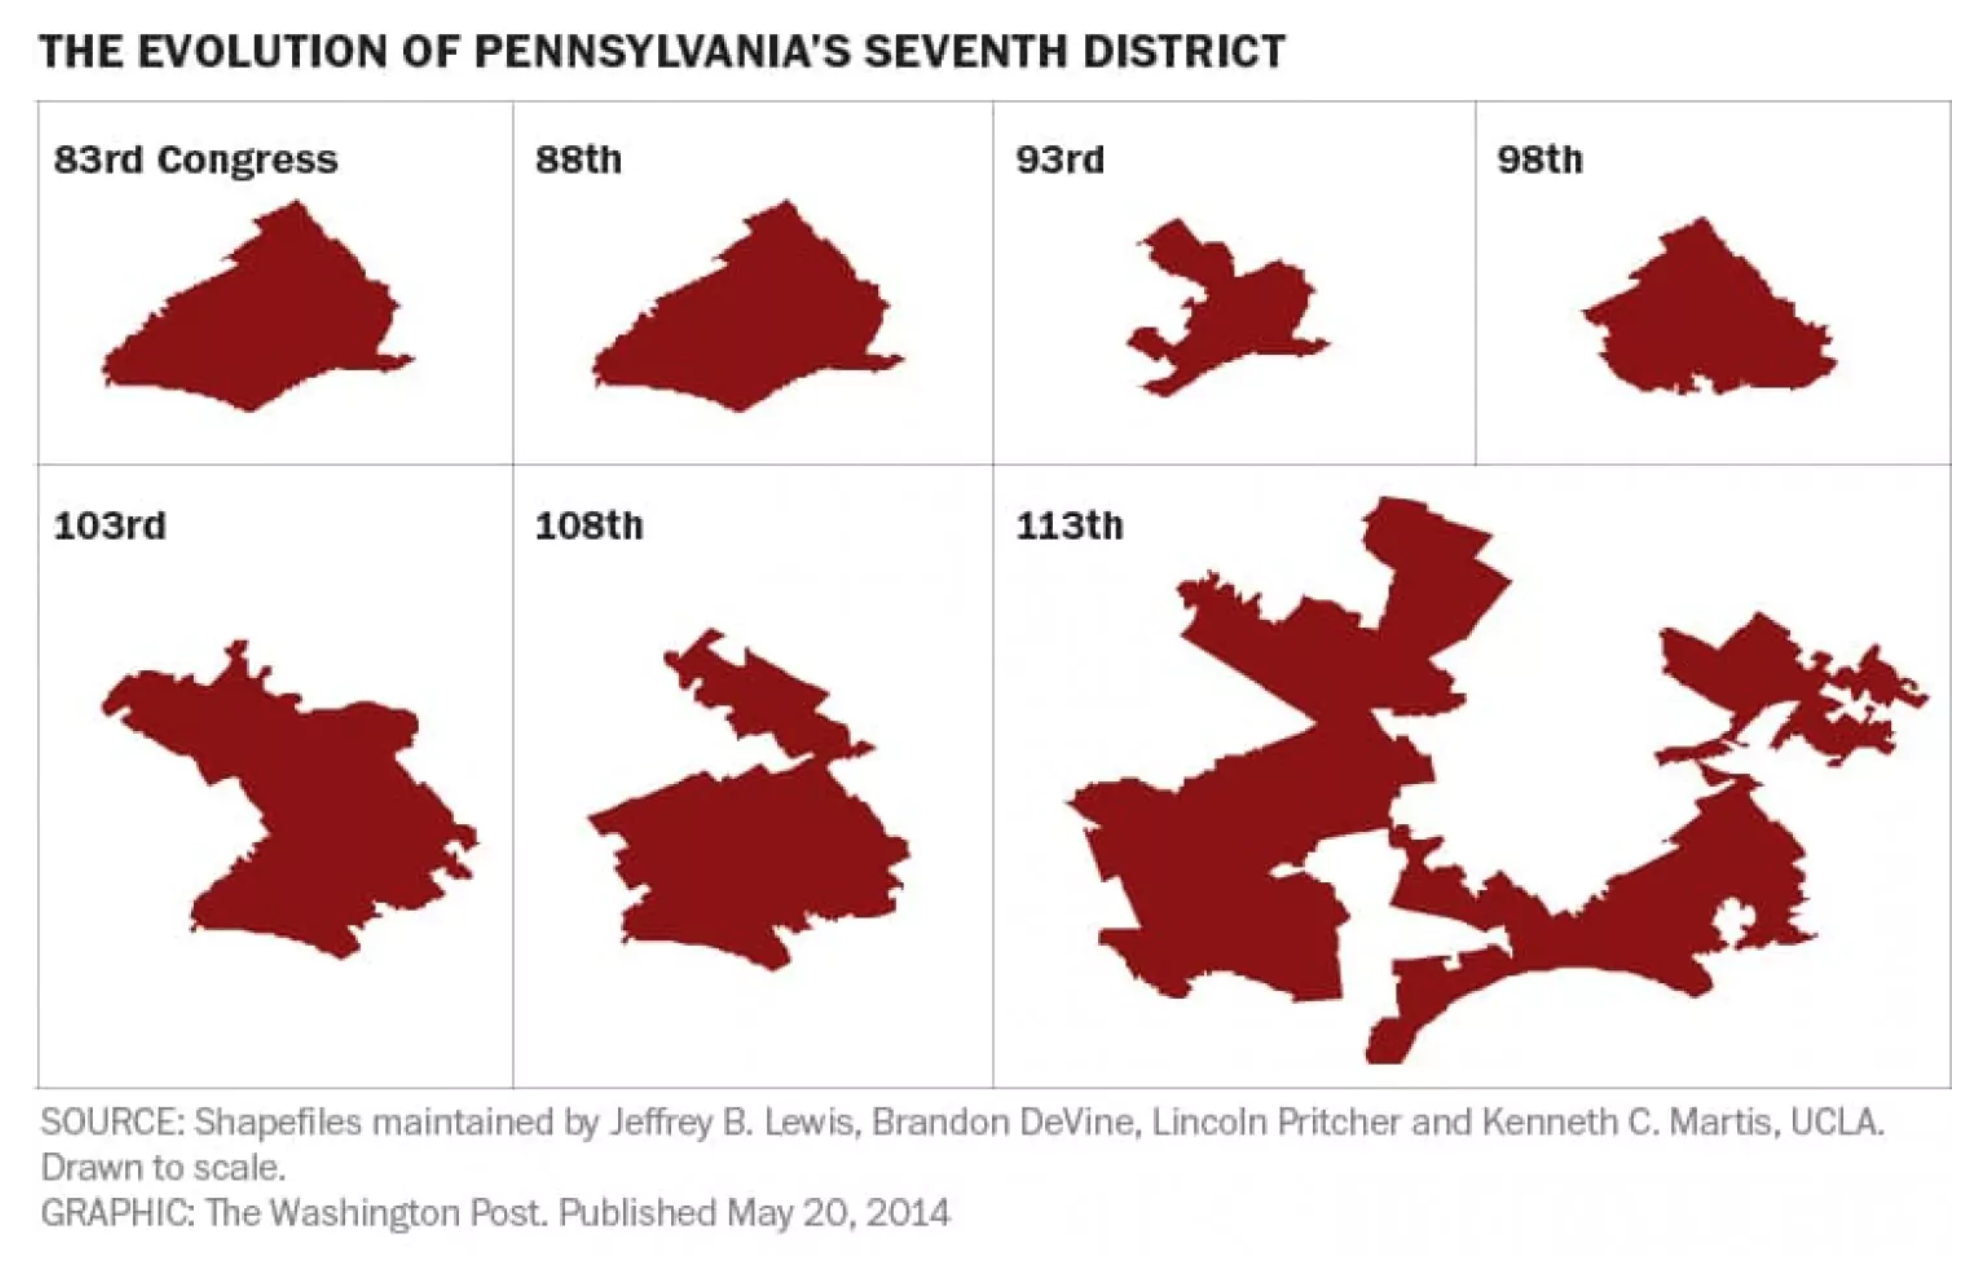 The changing shape of Pennsylvania's 7th Congressional District